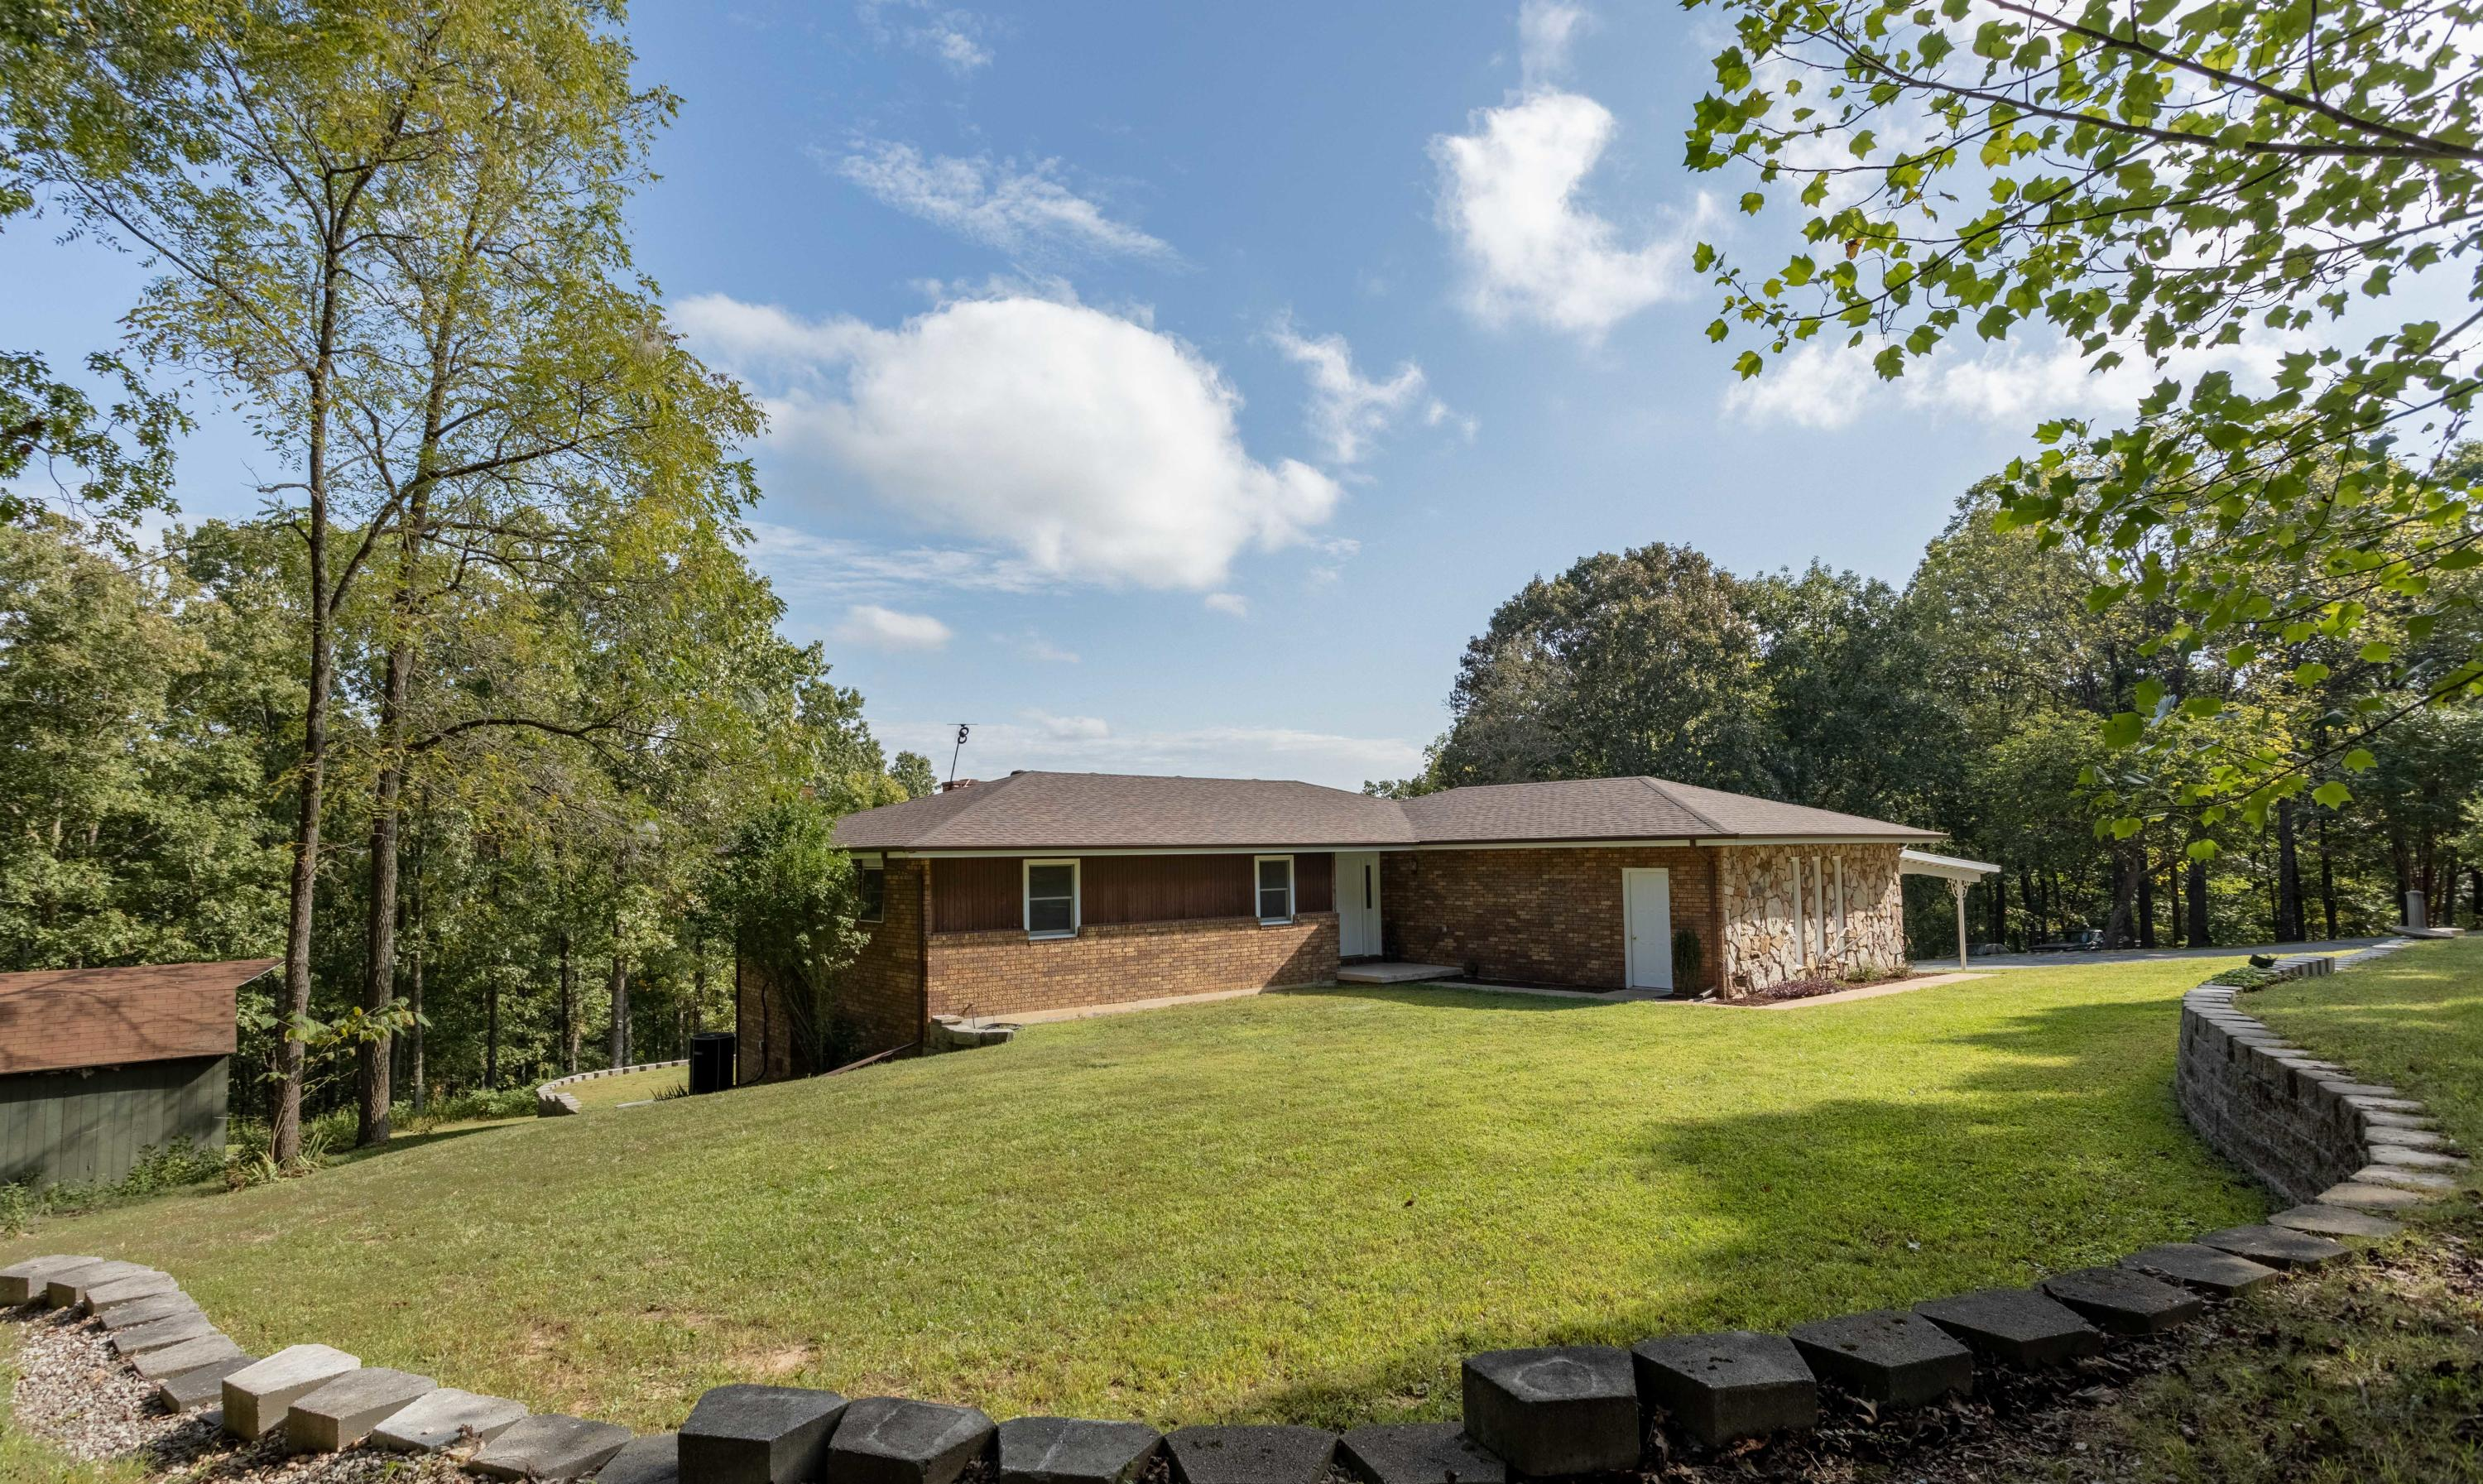 11772 State Hwy. 176 Walnut Shade, MO 65771